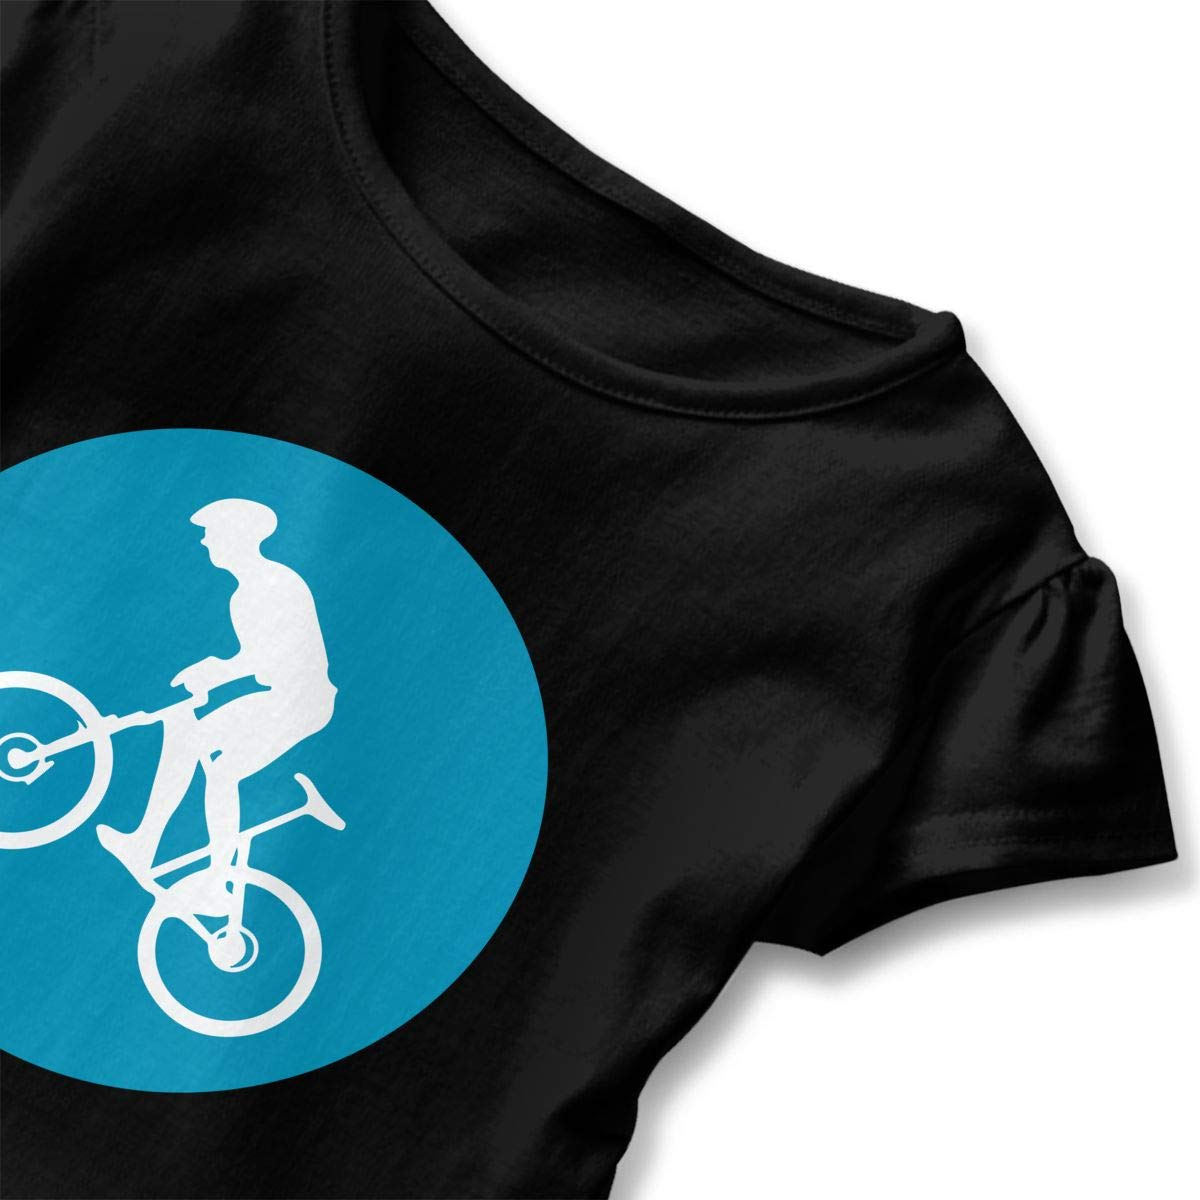 Little Girls Mountain Bike Circle Icon Funny Short Sleeve Cotton T Shirts Basic Tops Tee Clothes